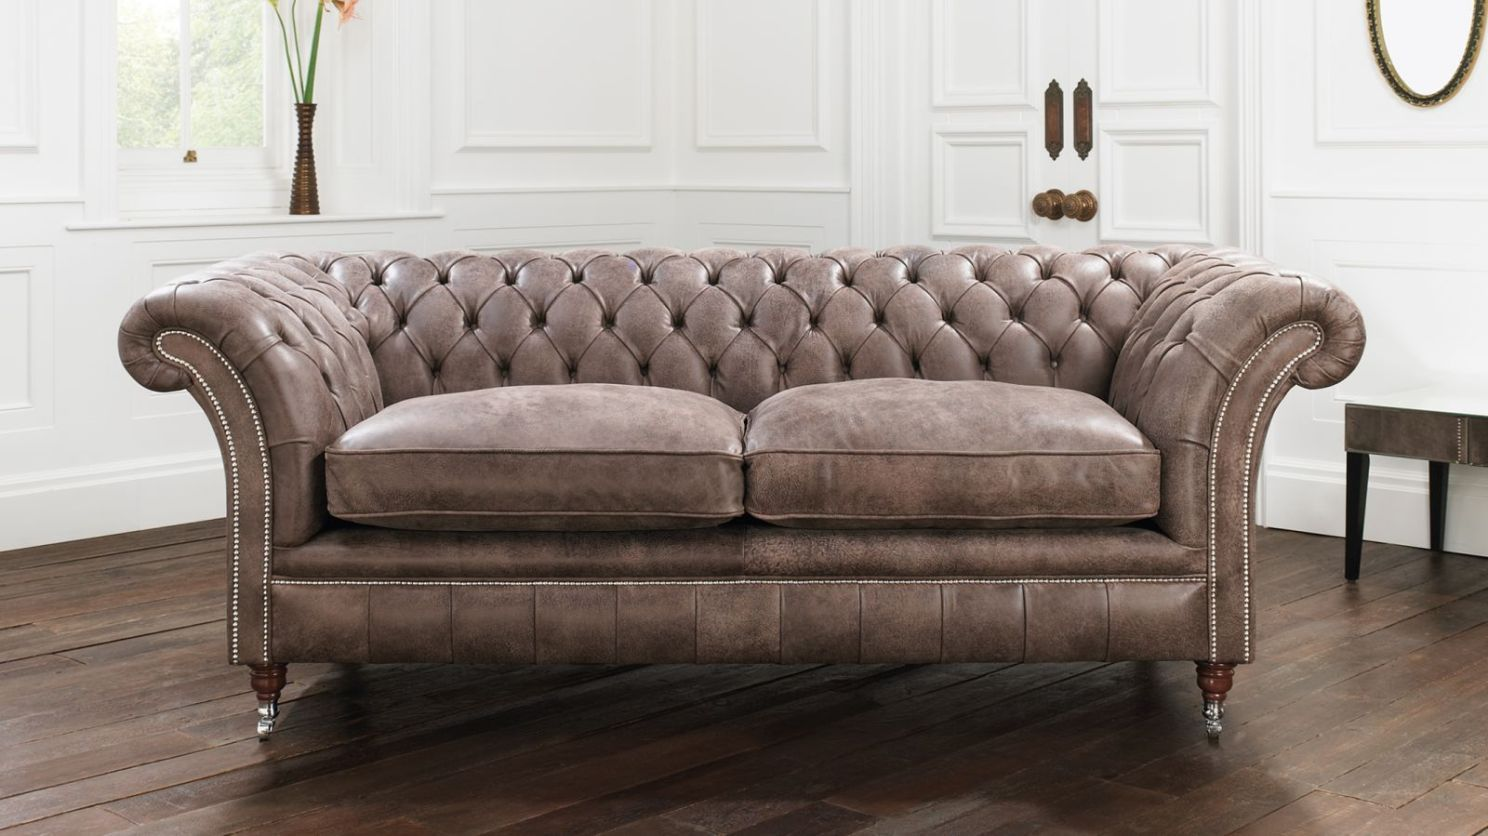 Sofa In Chesterfield Look Combine Classic Look With Modern Beauty By Stunning Chesterfield